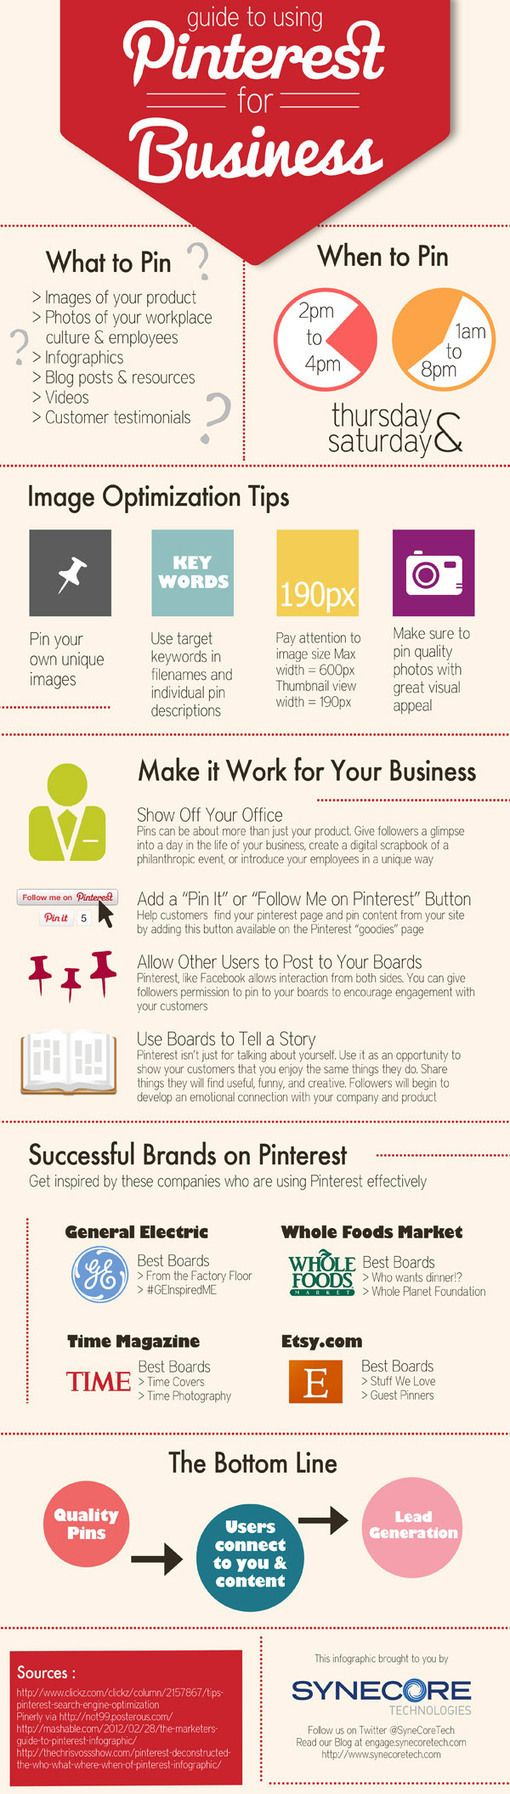 Realistic Programs For Pinterest For Business - The Options} http://www.feedbacknews.com/pfb/?